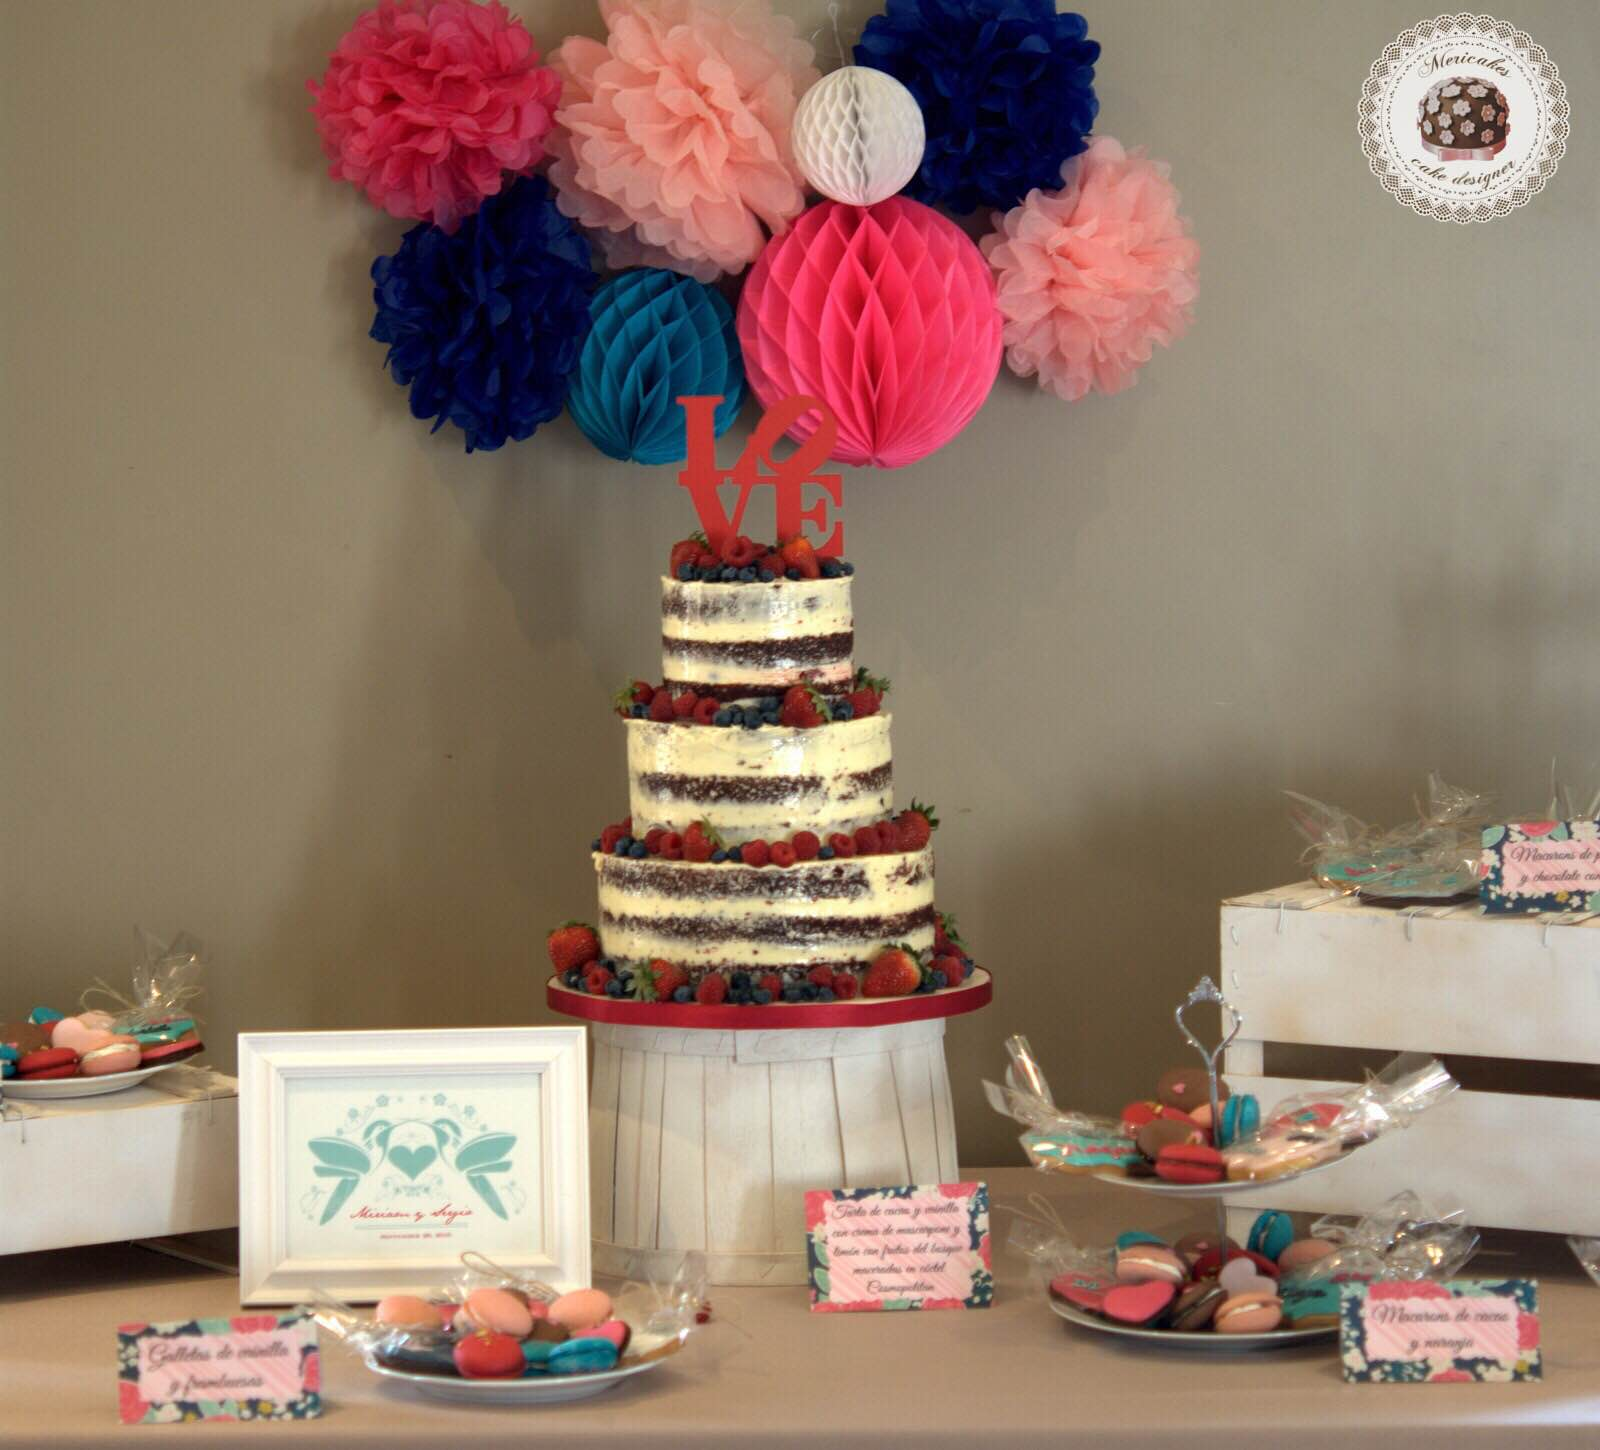 mesa-dulce-sweet-table-wedding-boda-bodas-barcelona-tarta-de-boda-macarons-mericakes-galletas-candy-bar-barcelona-weddings-2